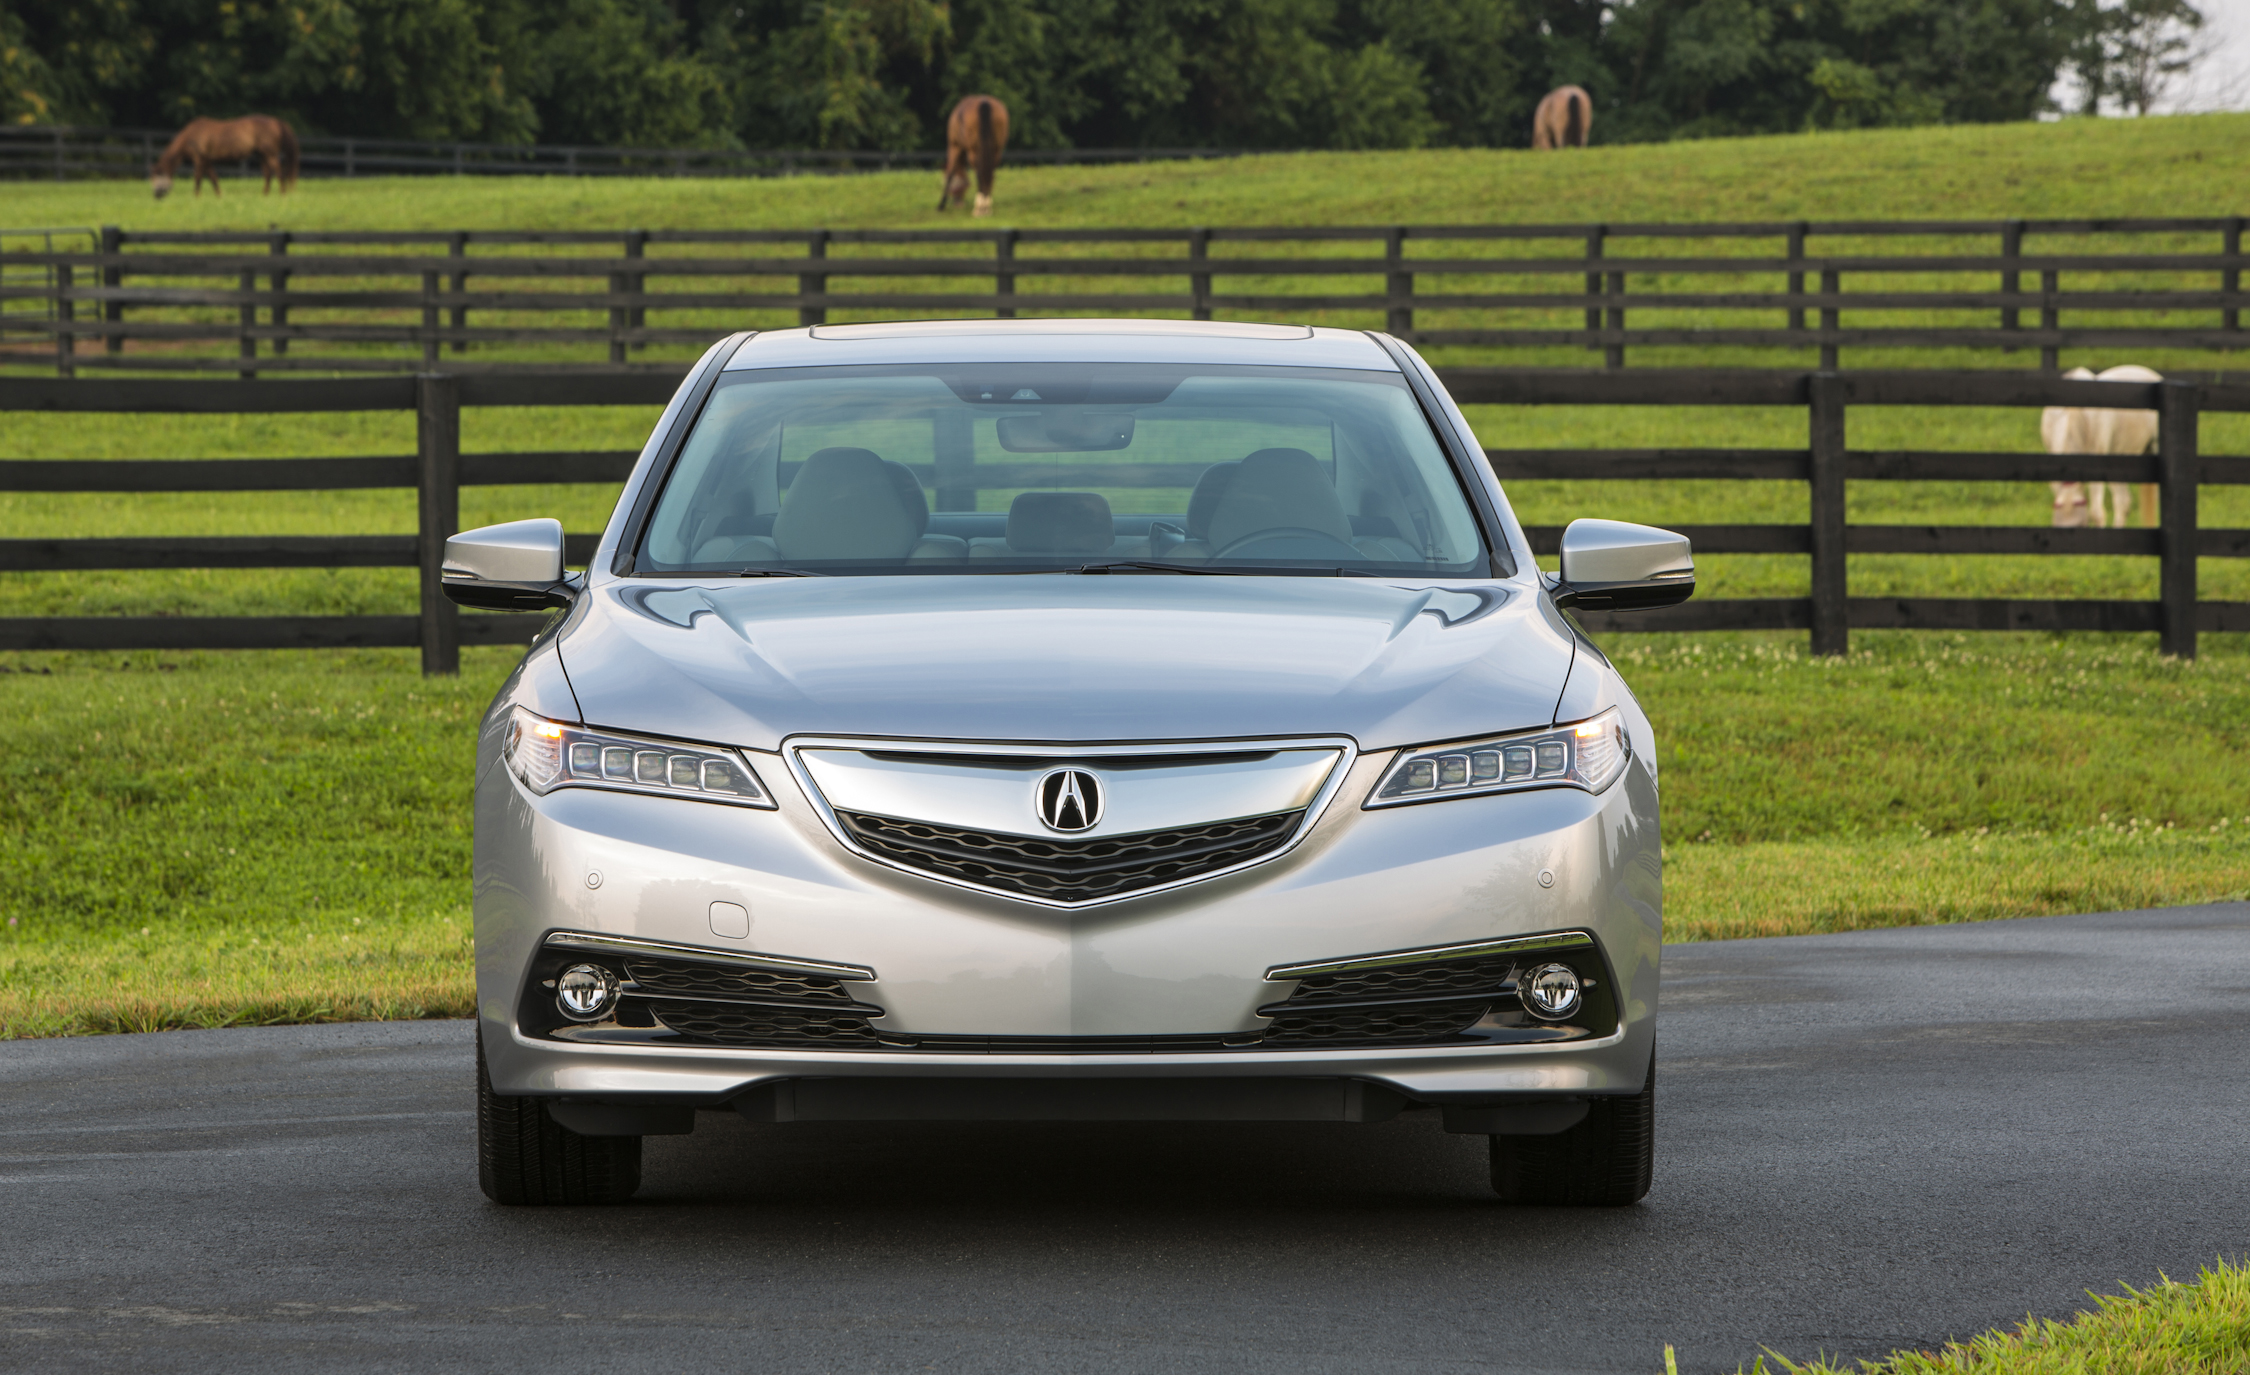 2015 Acura TLX 3.5L SH-AWD Exterior Front View